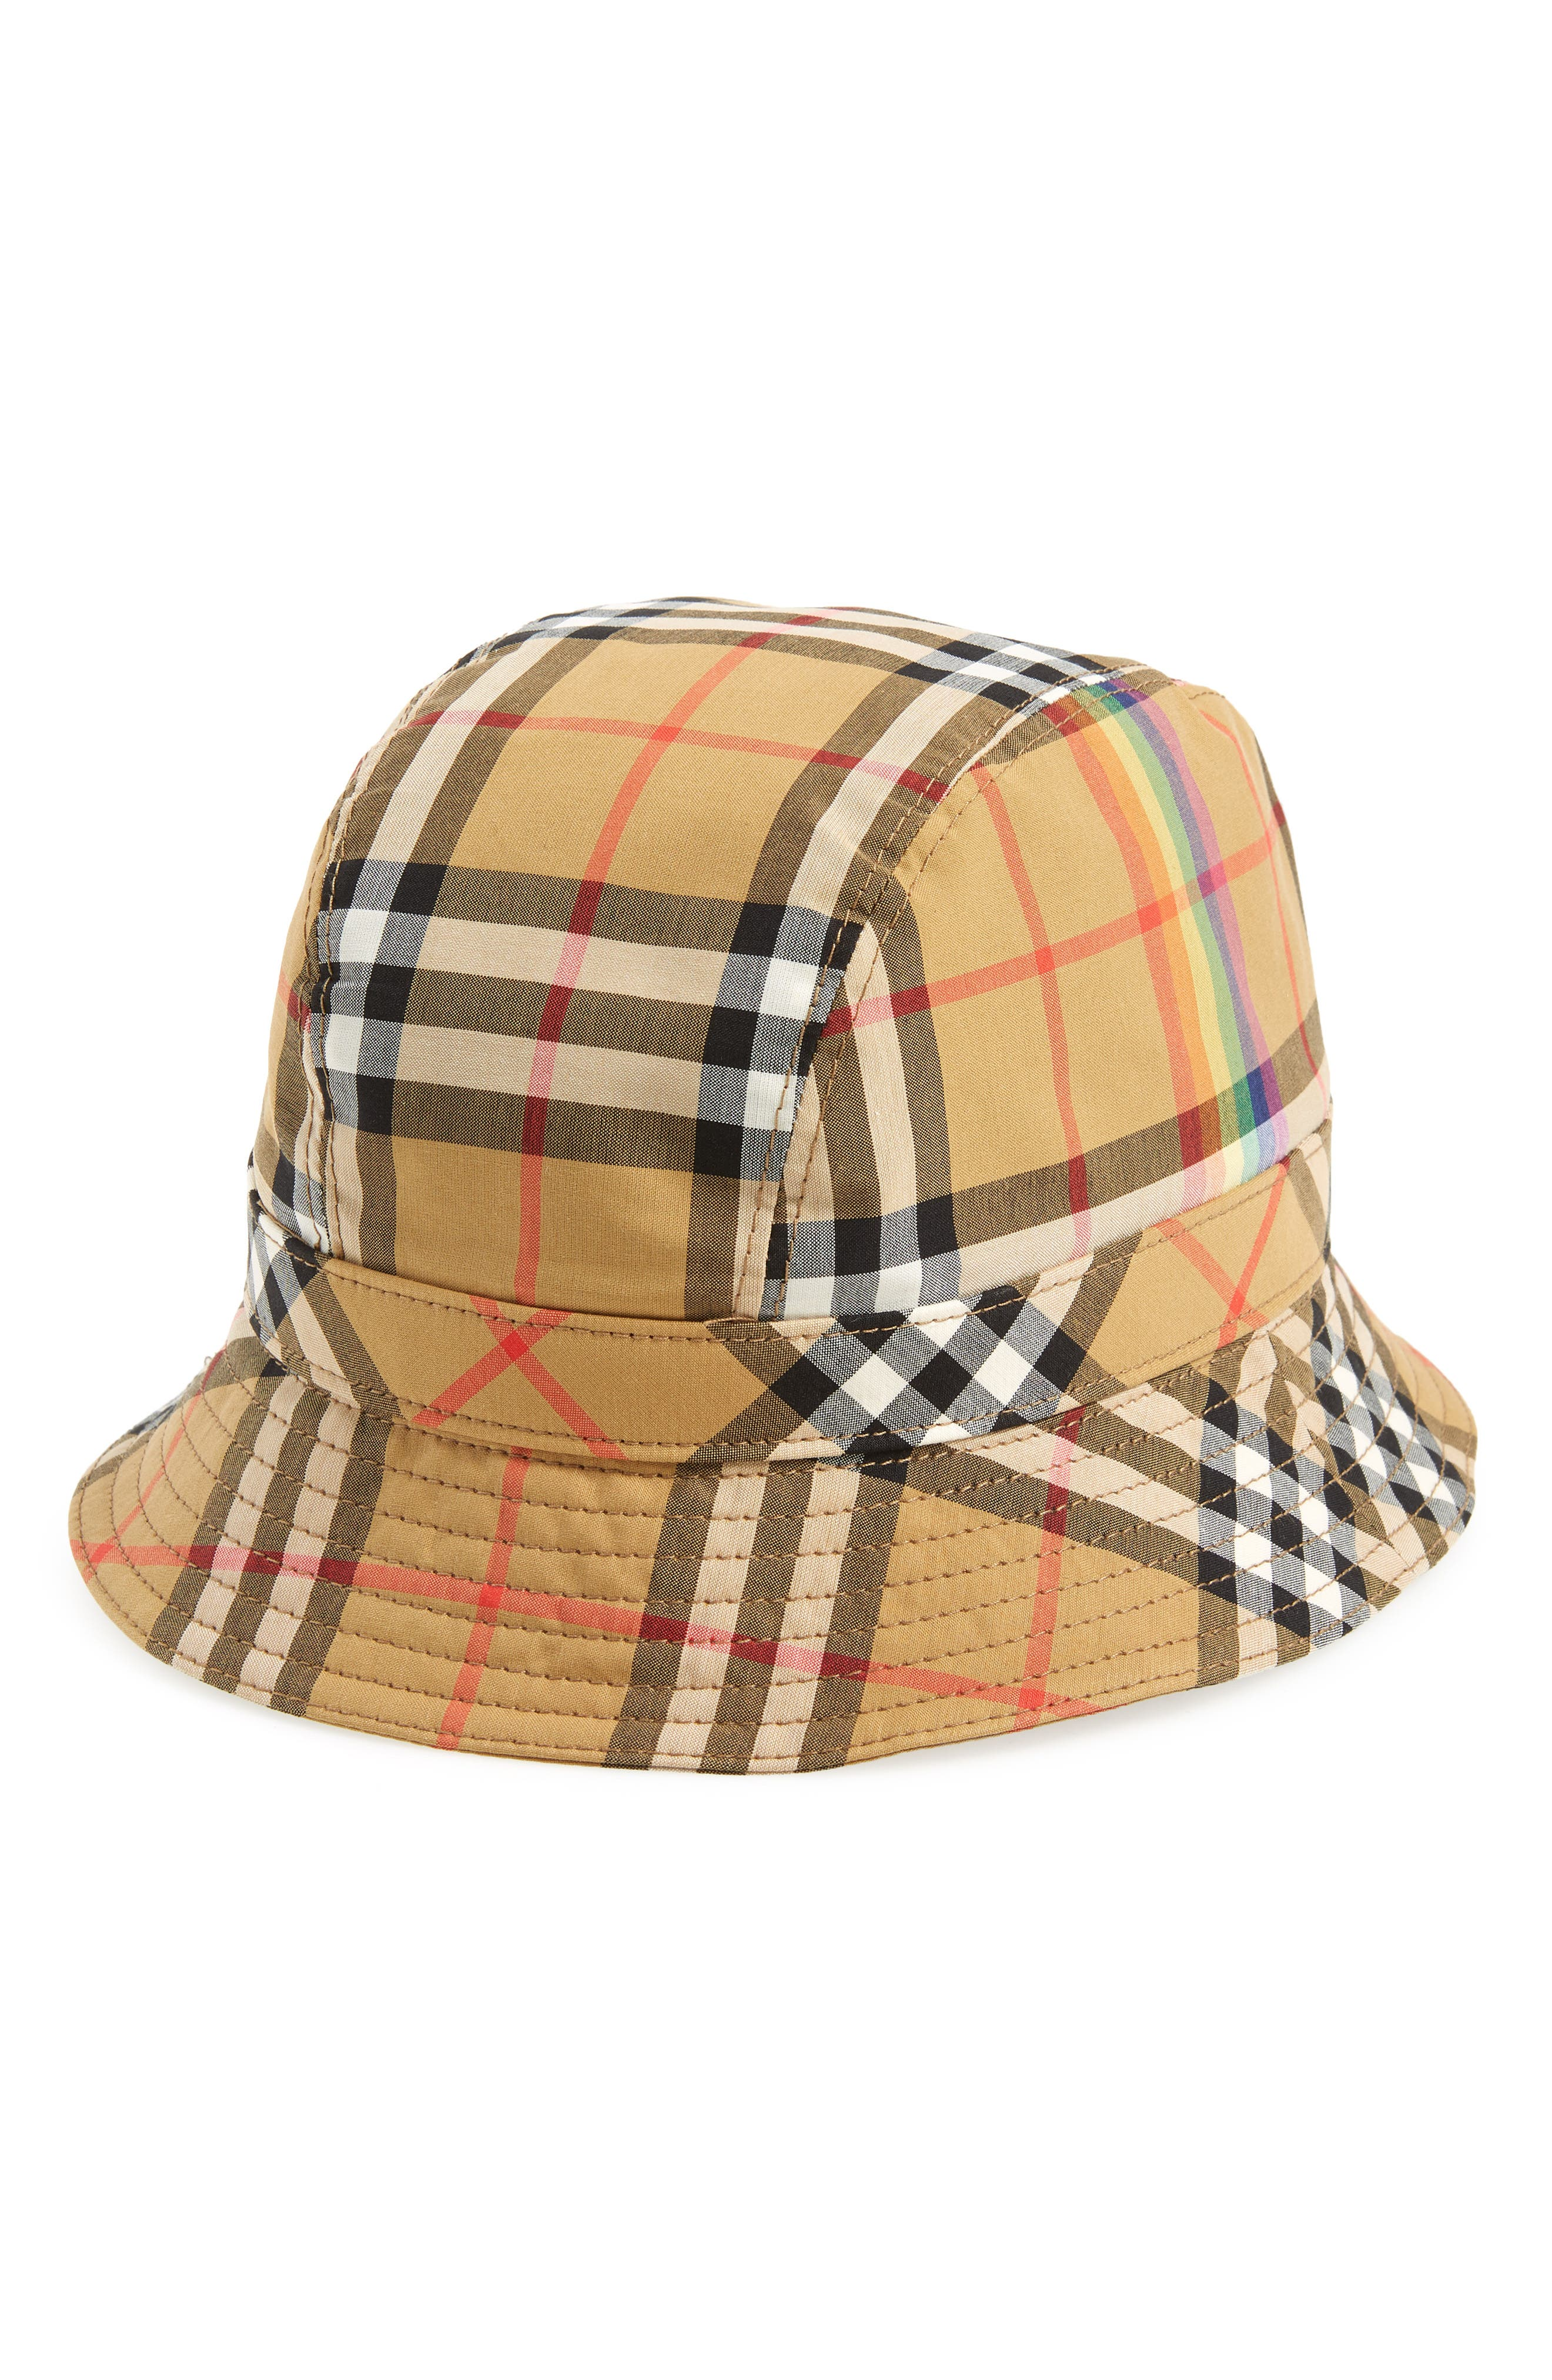 Rainbow Stripe Vintage Check Bucket Hat,                         Main,                         color, ANTIQUE YELLOW/ RAINBOW